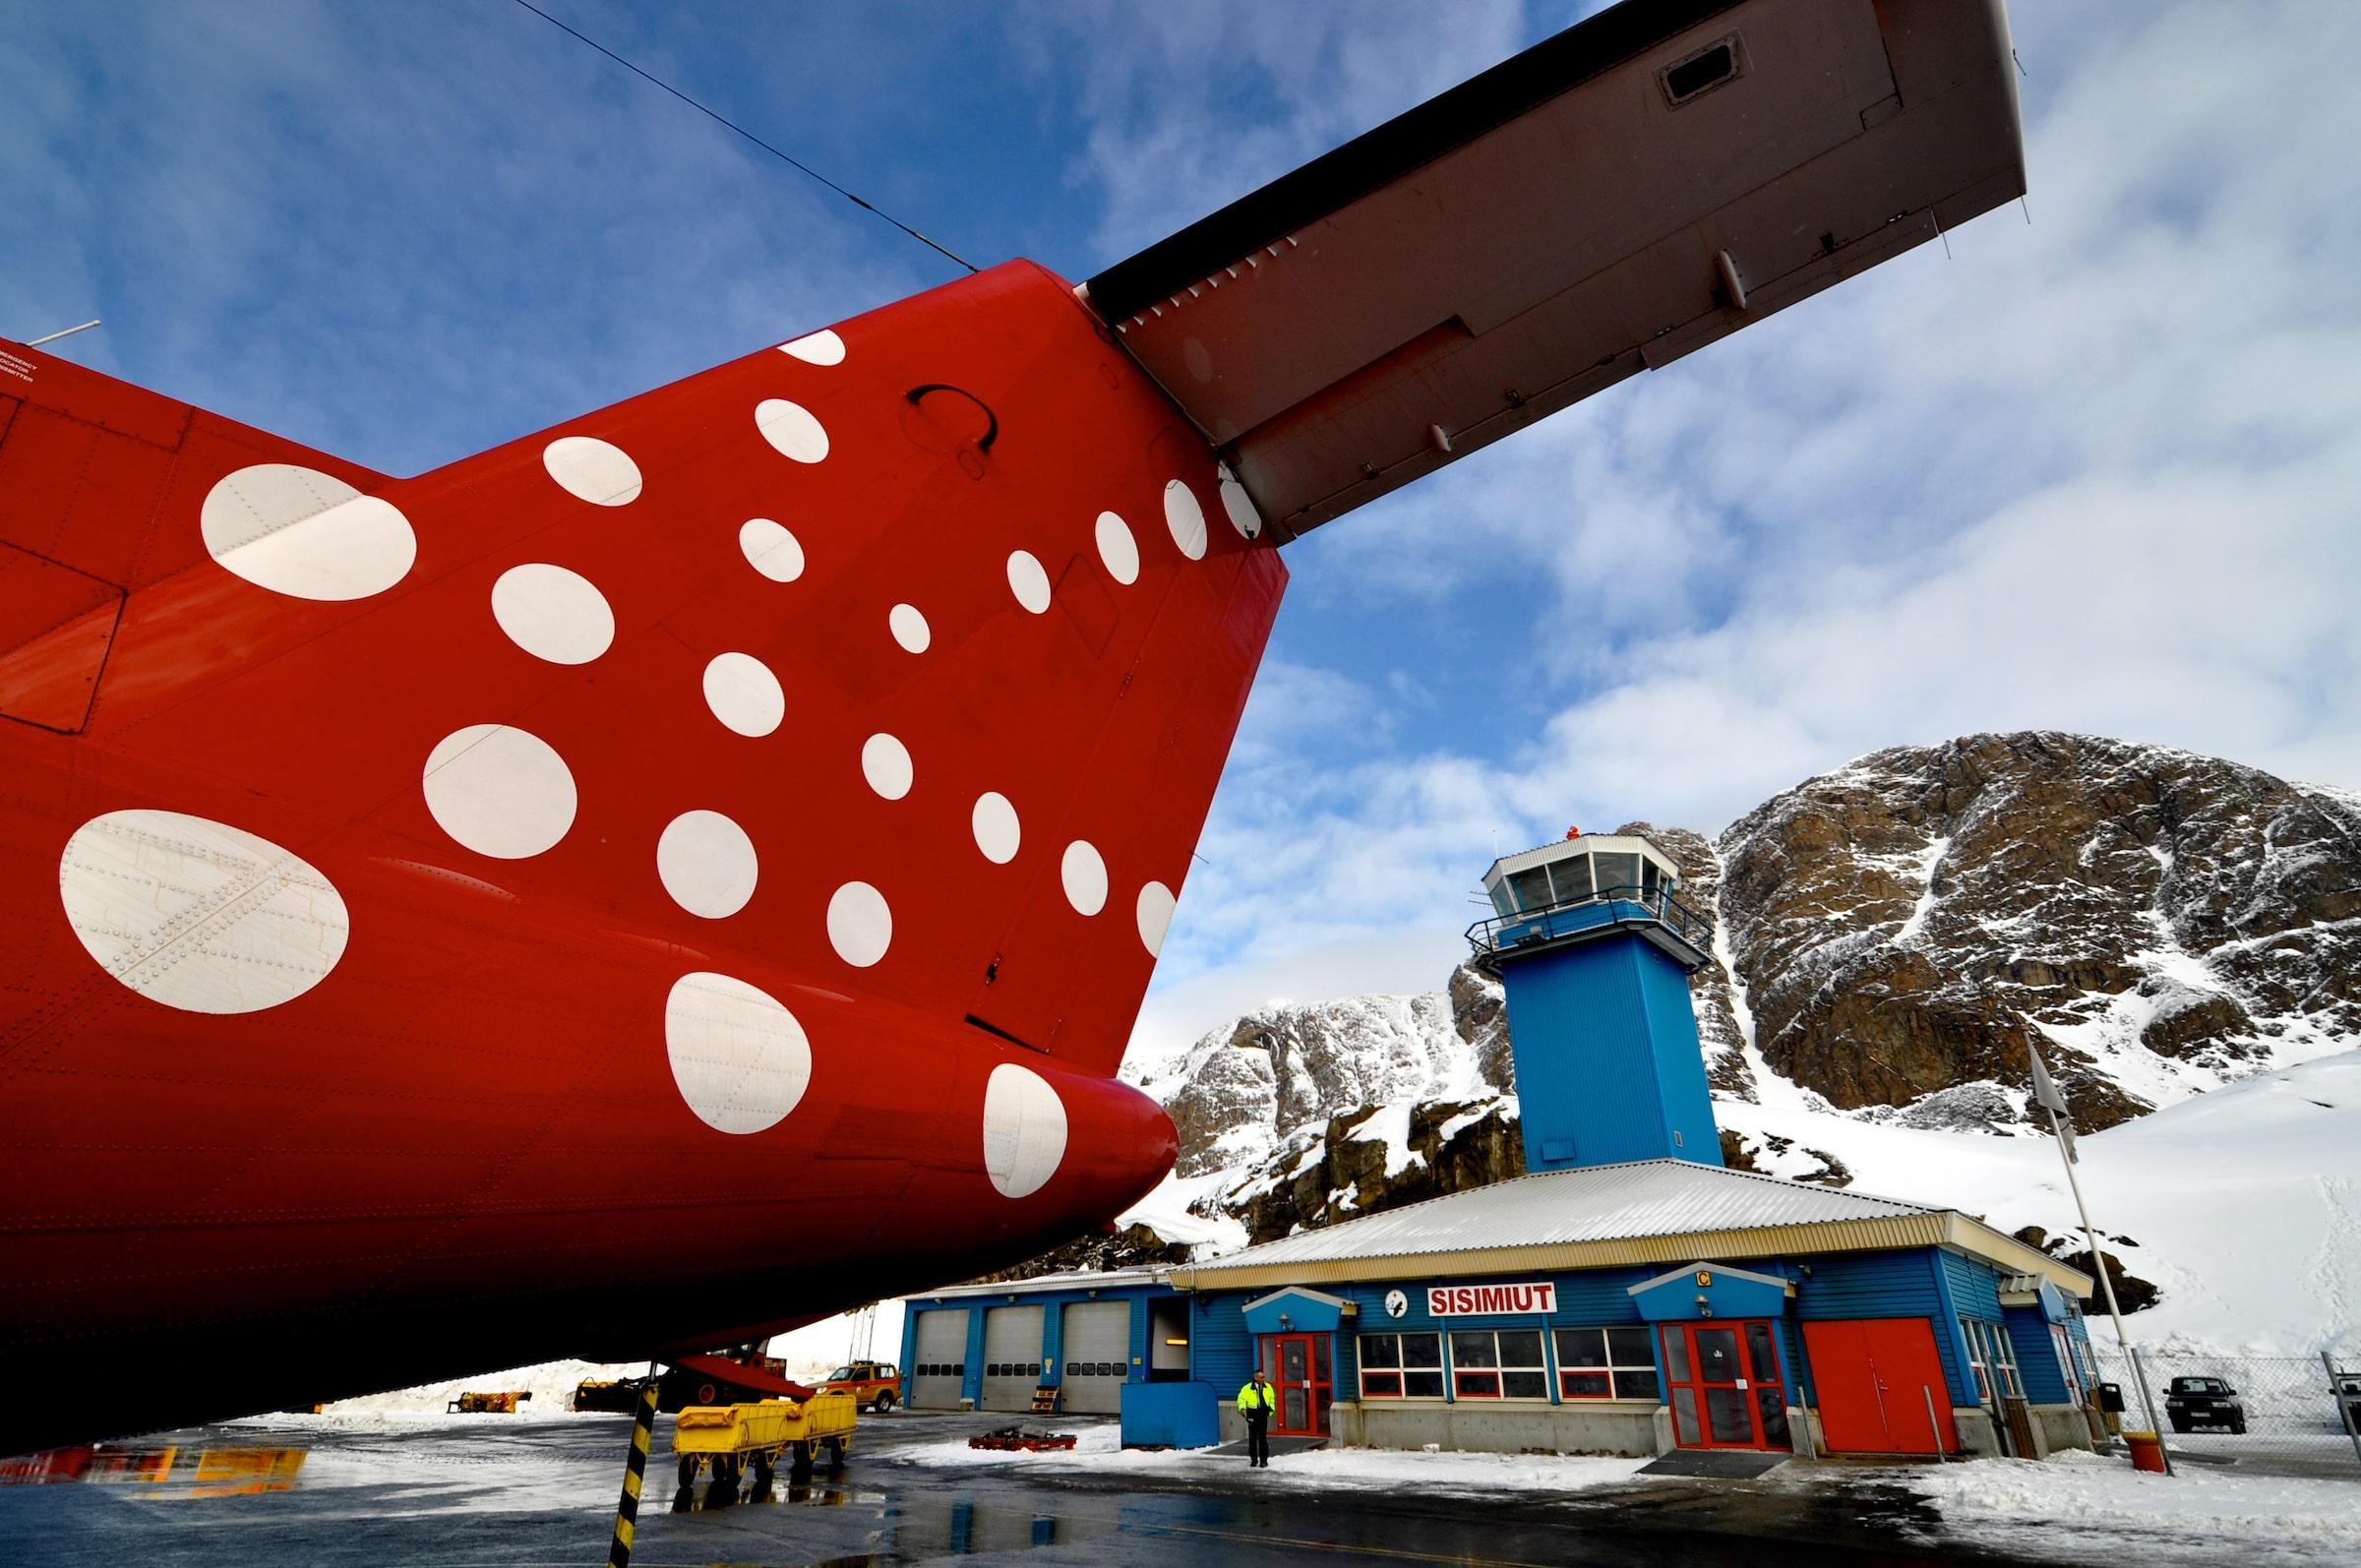 Spring weather at Sisimiut Airport in Greenland. Photo by Allan Liddle.